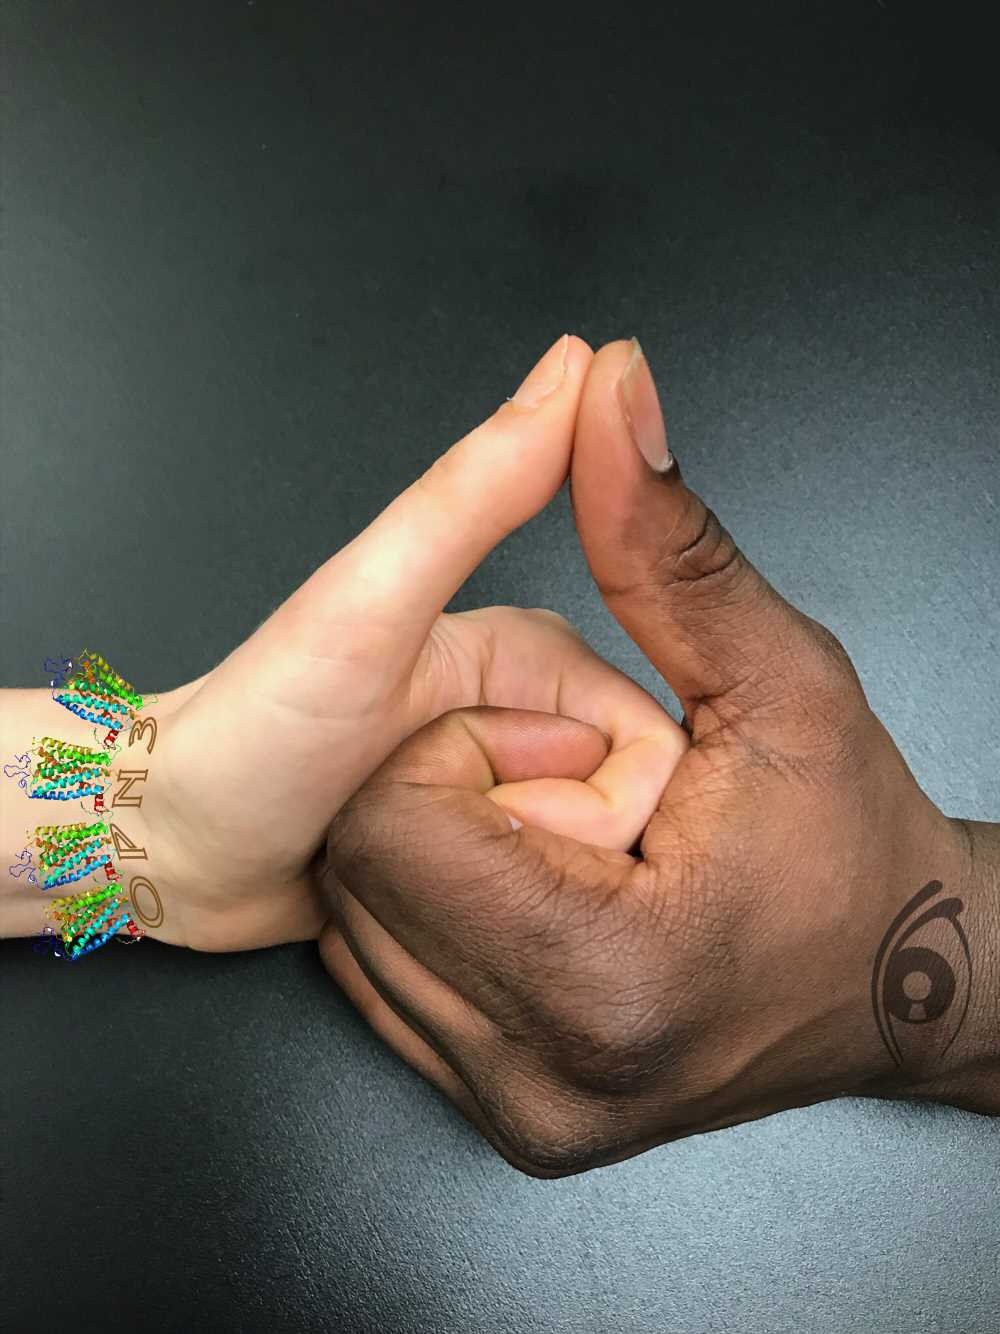 Researchers discover how a member of a family of light-sensitive proteins adjusts skin color